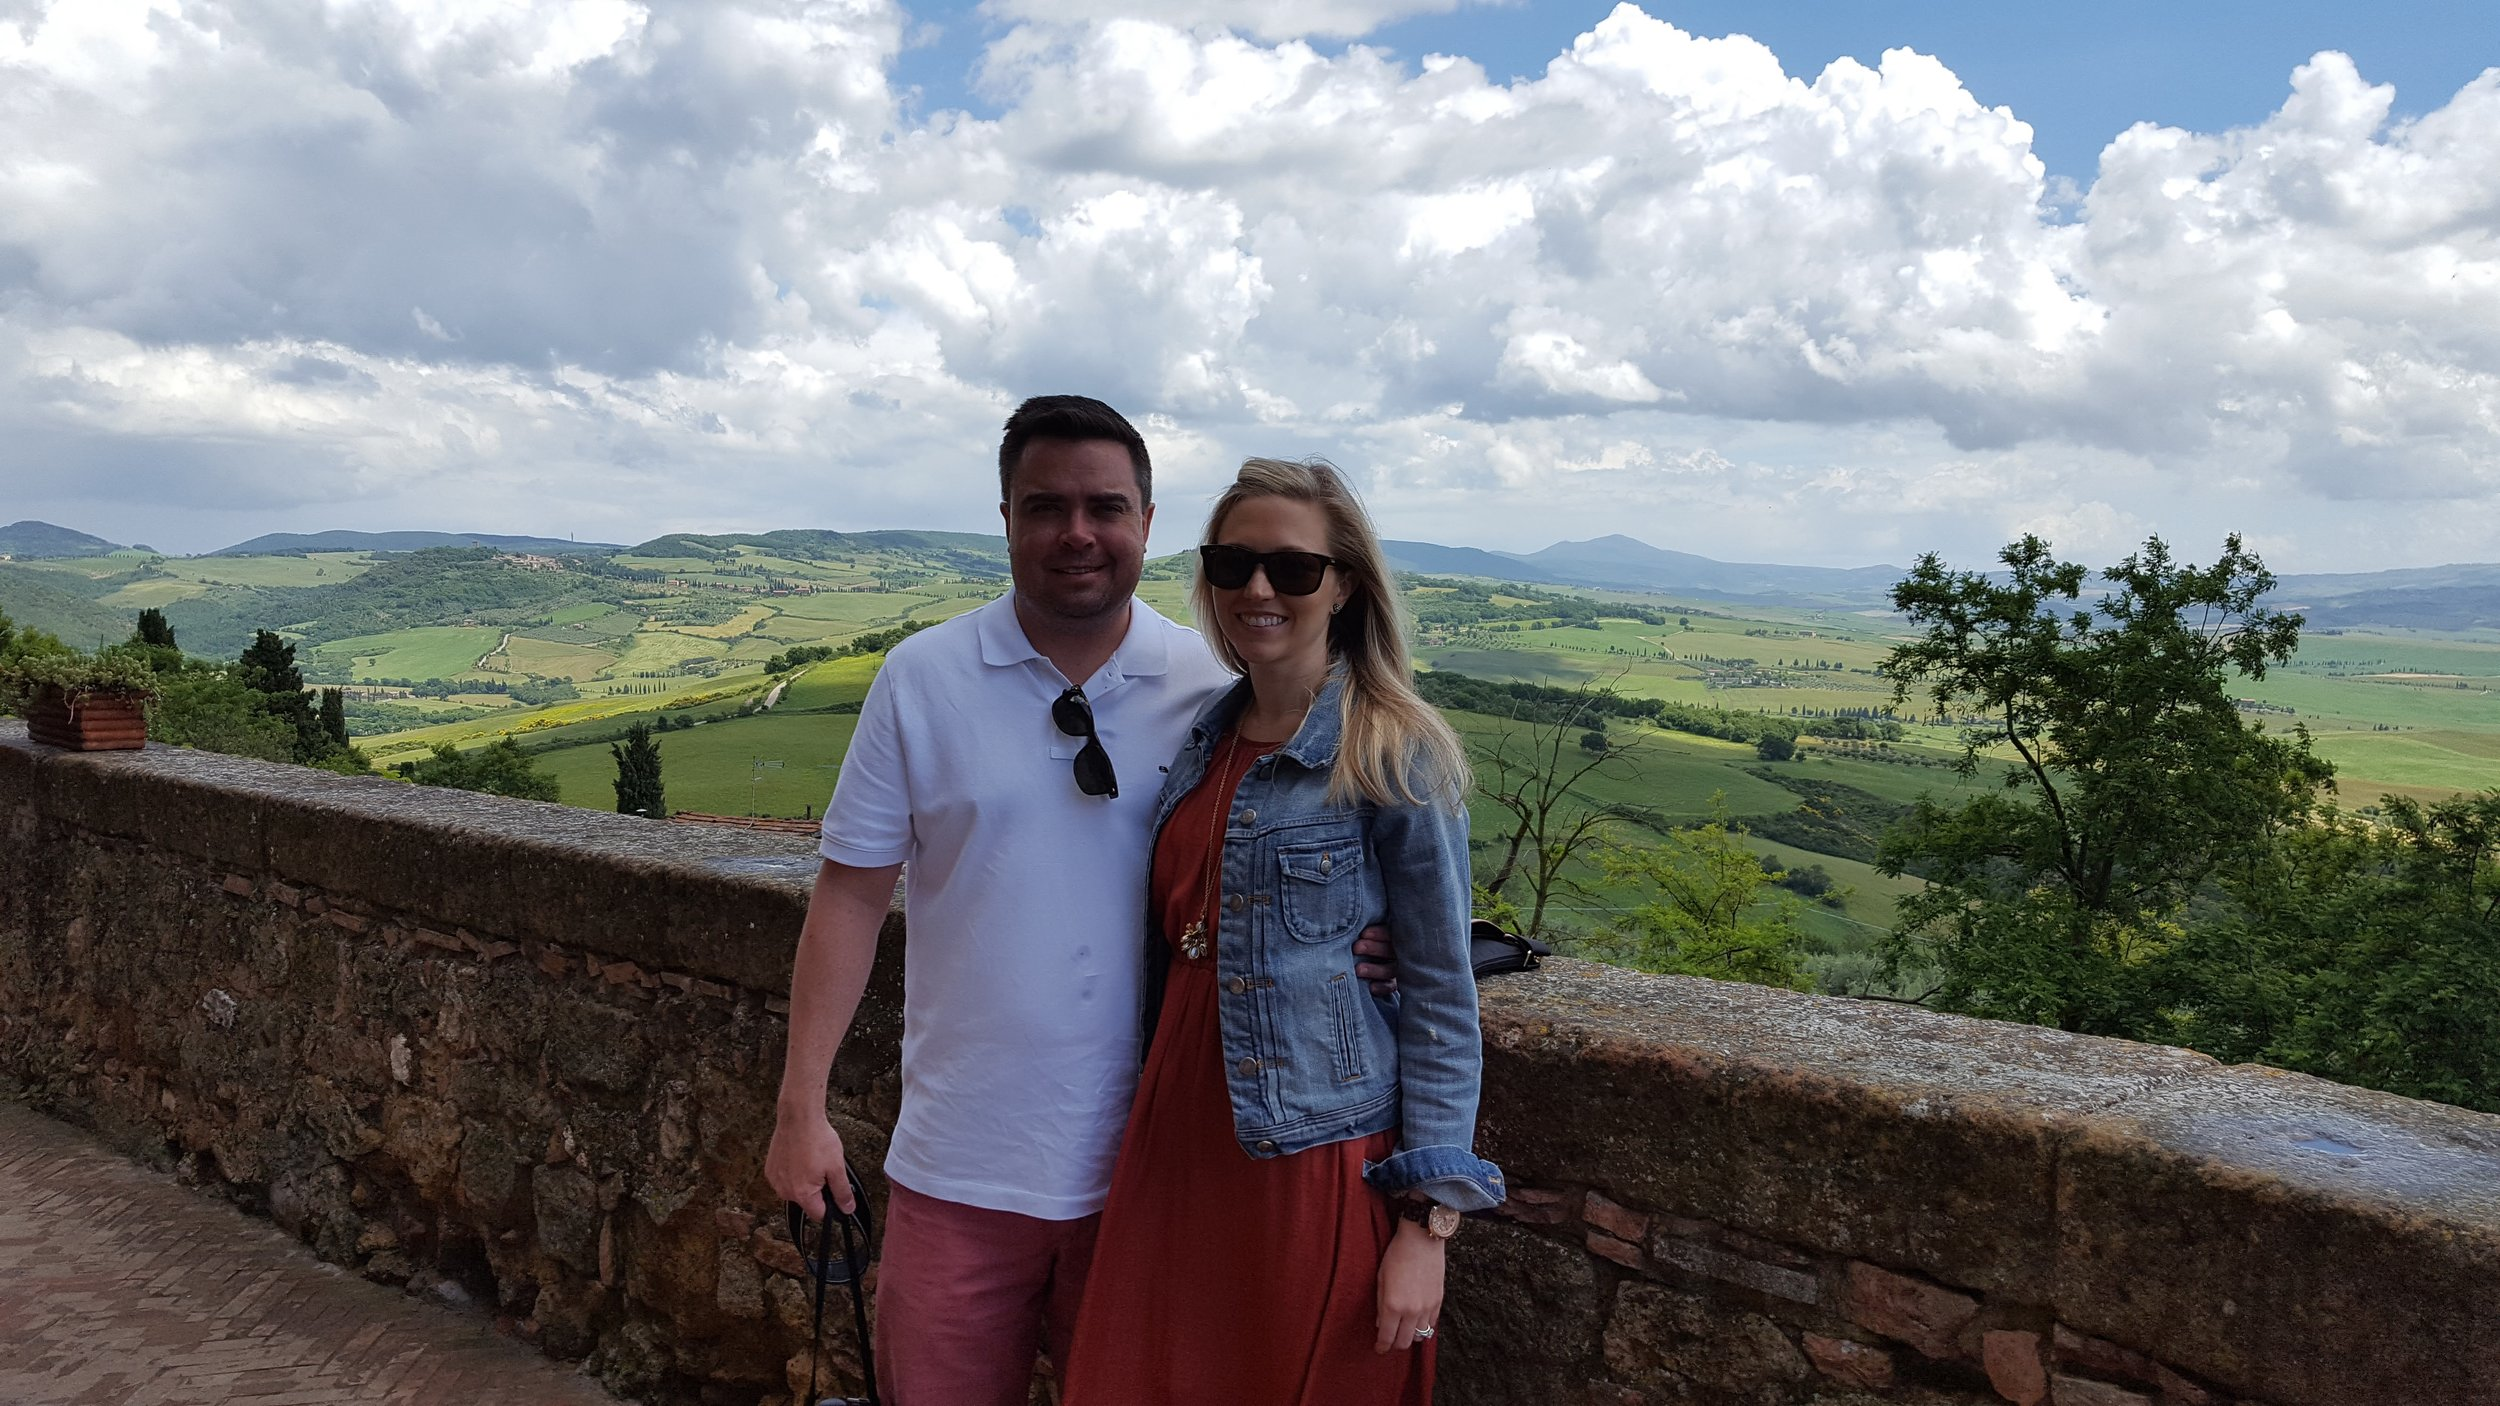 Cam and me taking in the view of the Tuscan countryside